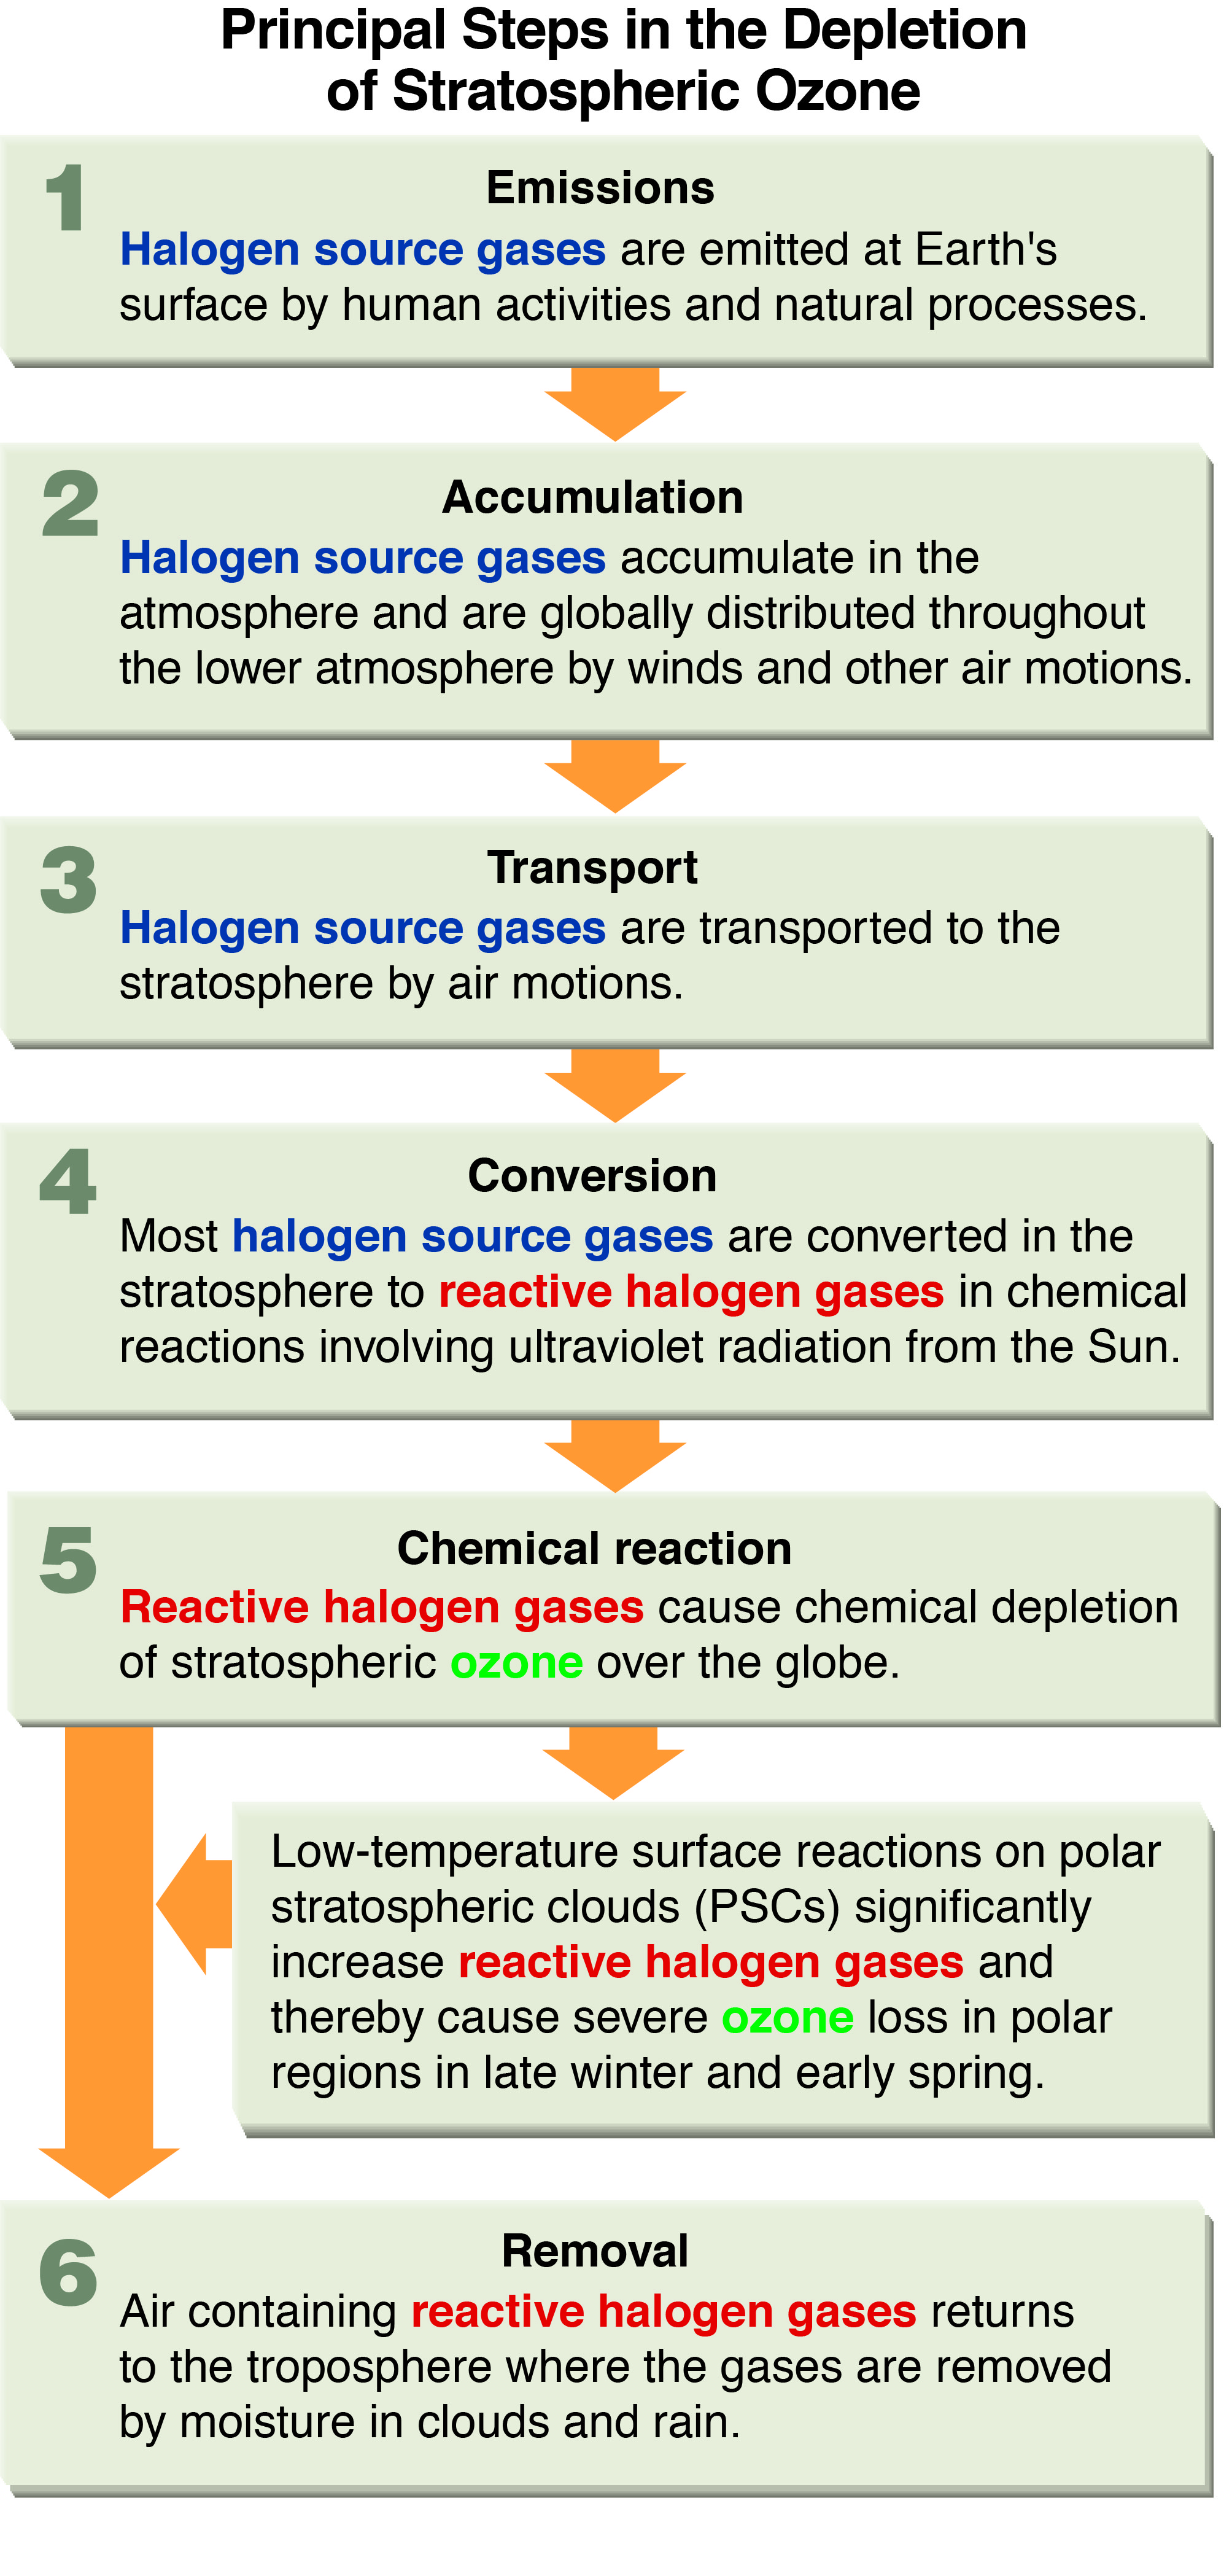 scientific assessment of ozone depletion twenty questions figure q6 1 eps small jpeg large